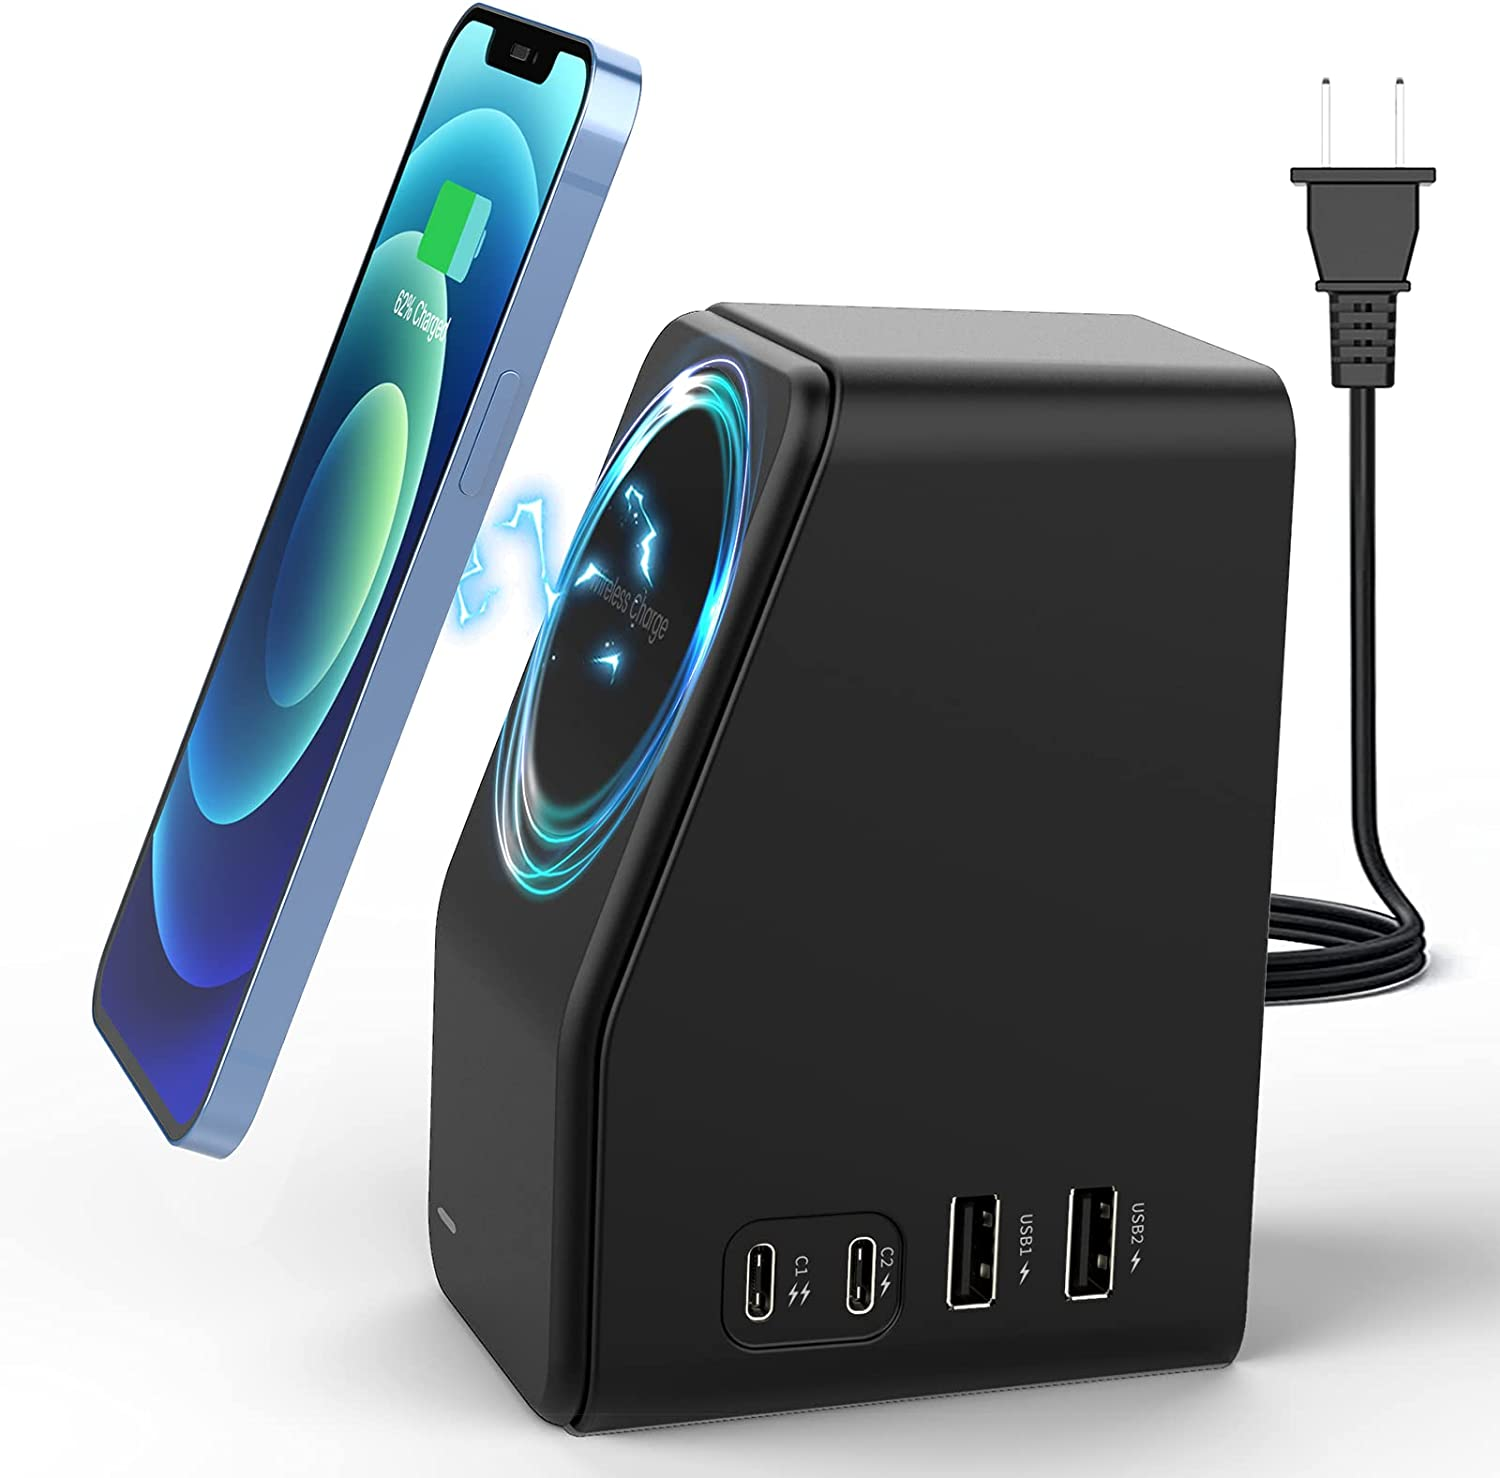 USB C Charging Station - 78W 4-Port Fast Desktop Multi Wall Charger Hub Dock Station, USB C and USB A Multiport for iPhone 13/12 Mini, MacBook Pro/Air, iPad, Samsung, with Magnetic Wireless Charger